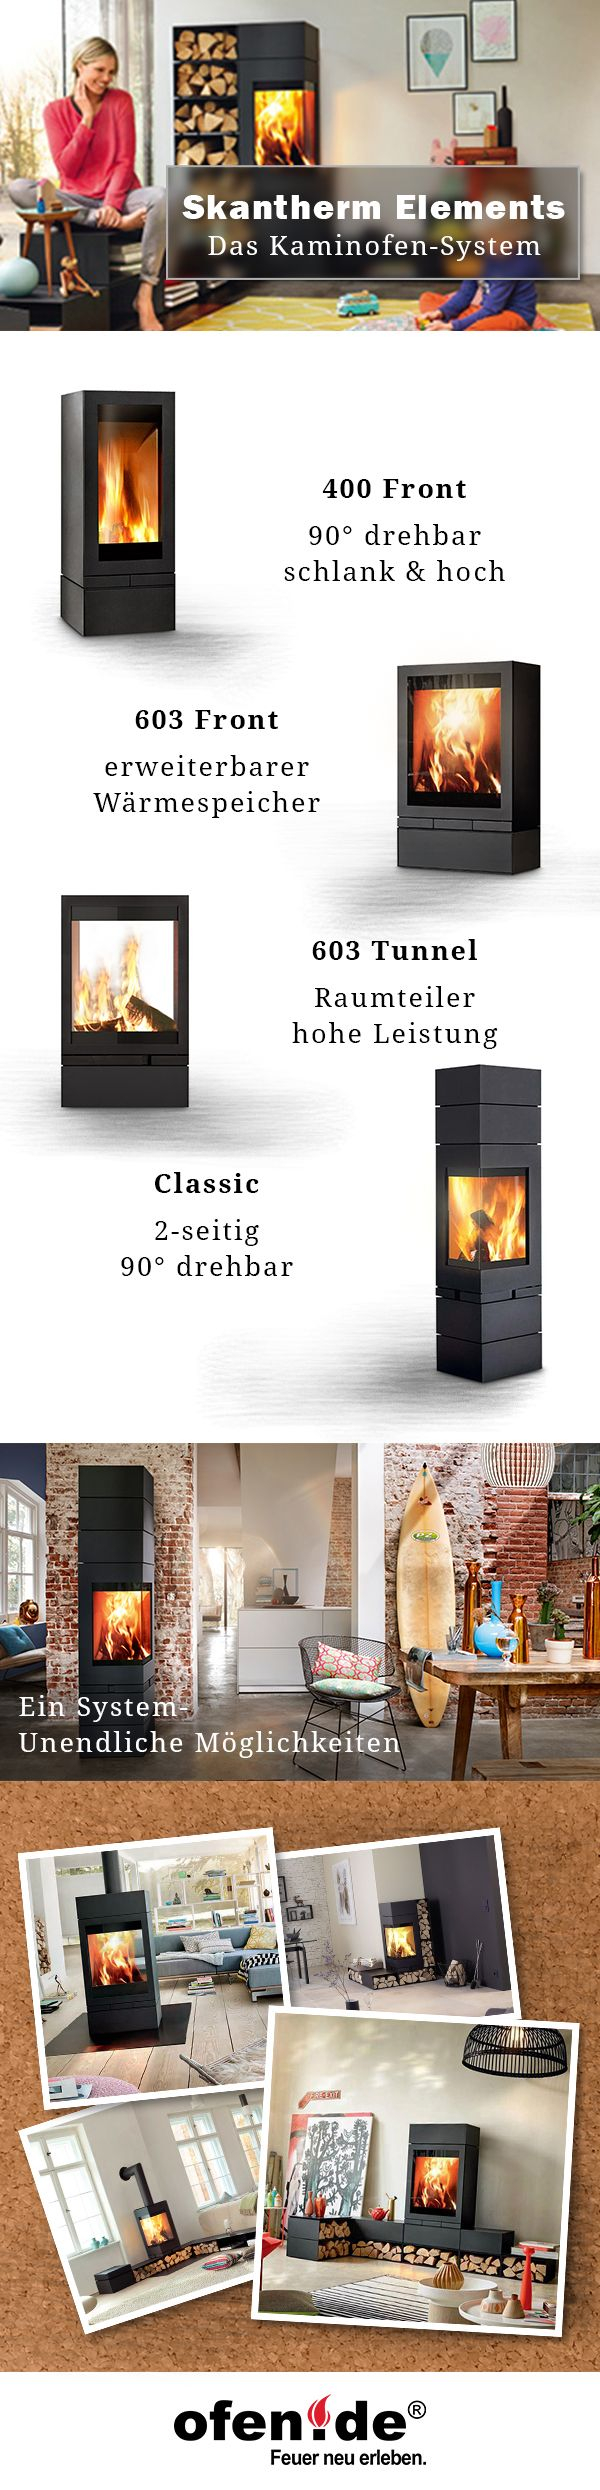 444 best home energy images on pinterest rocket stoves wood